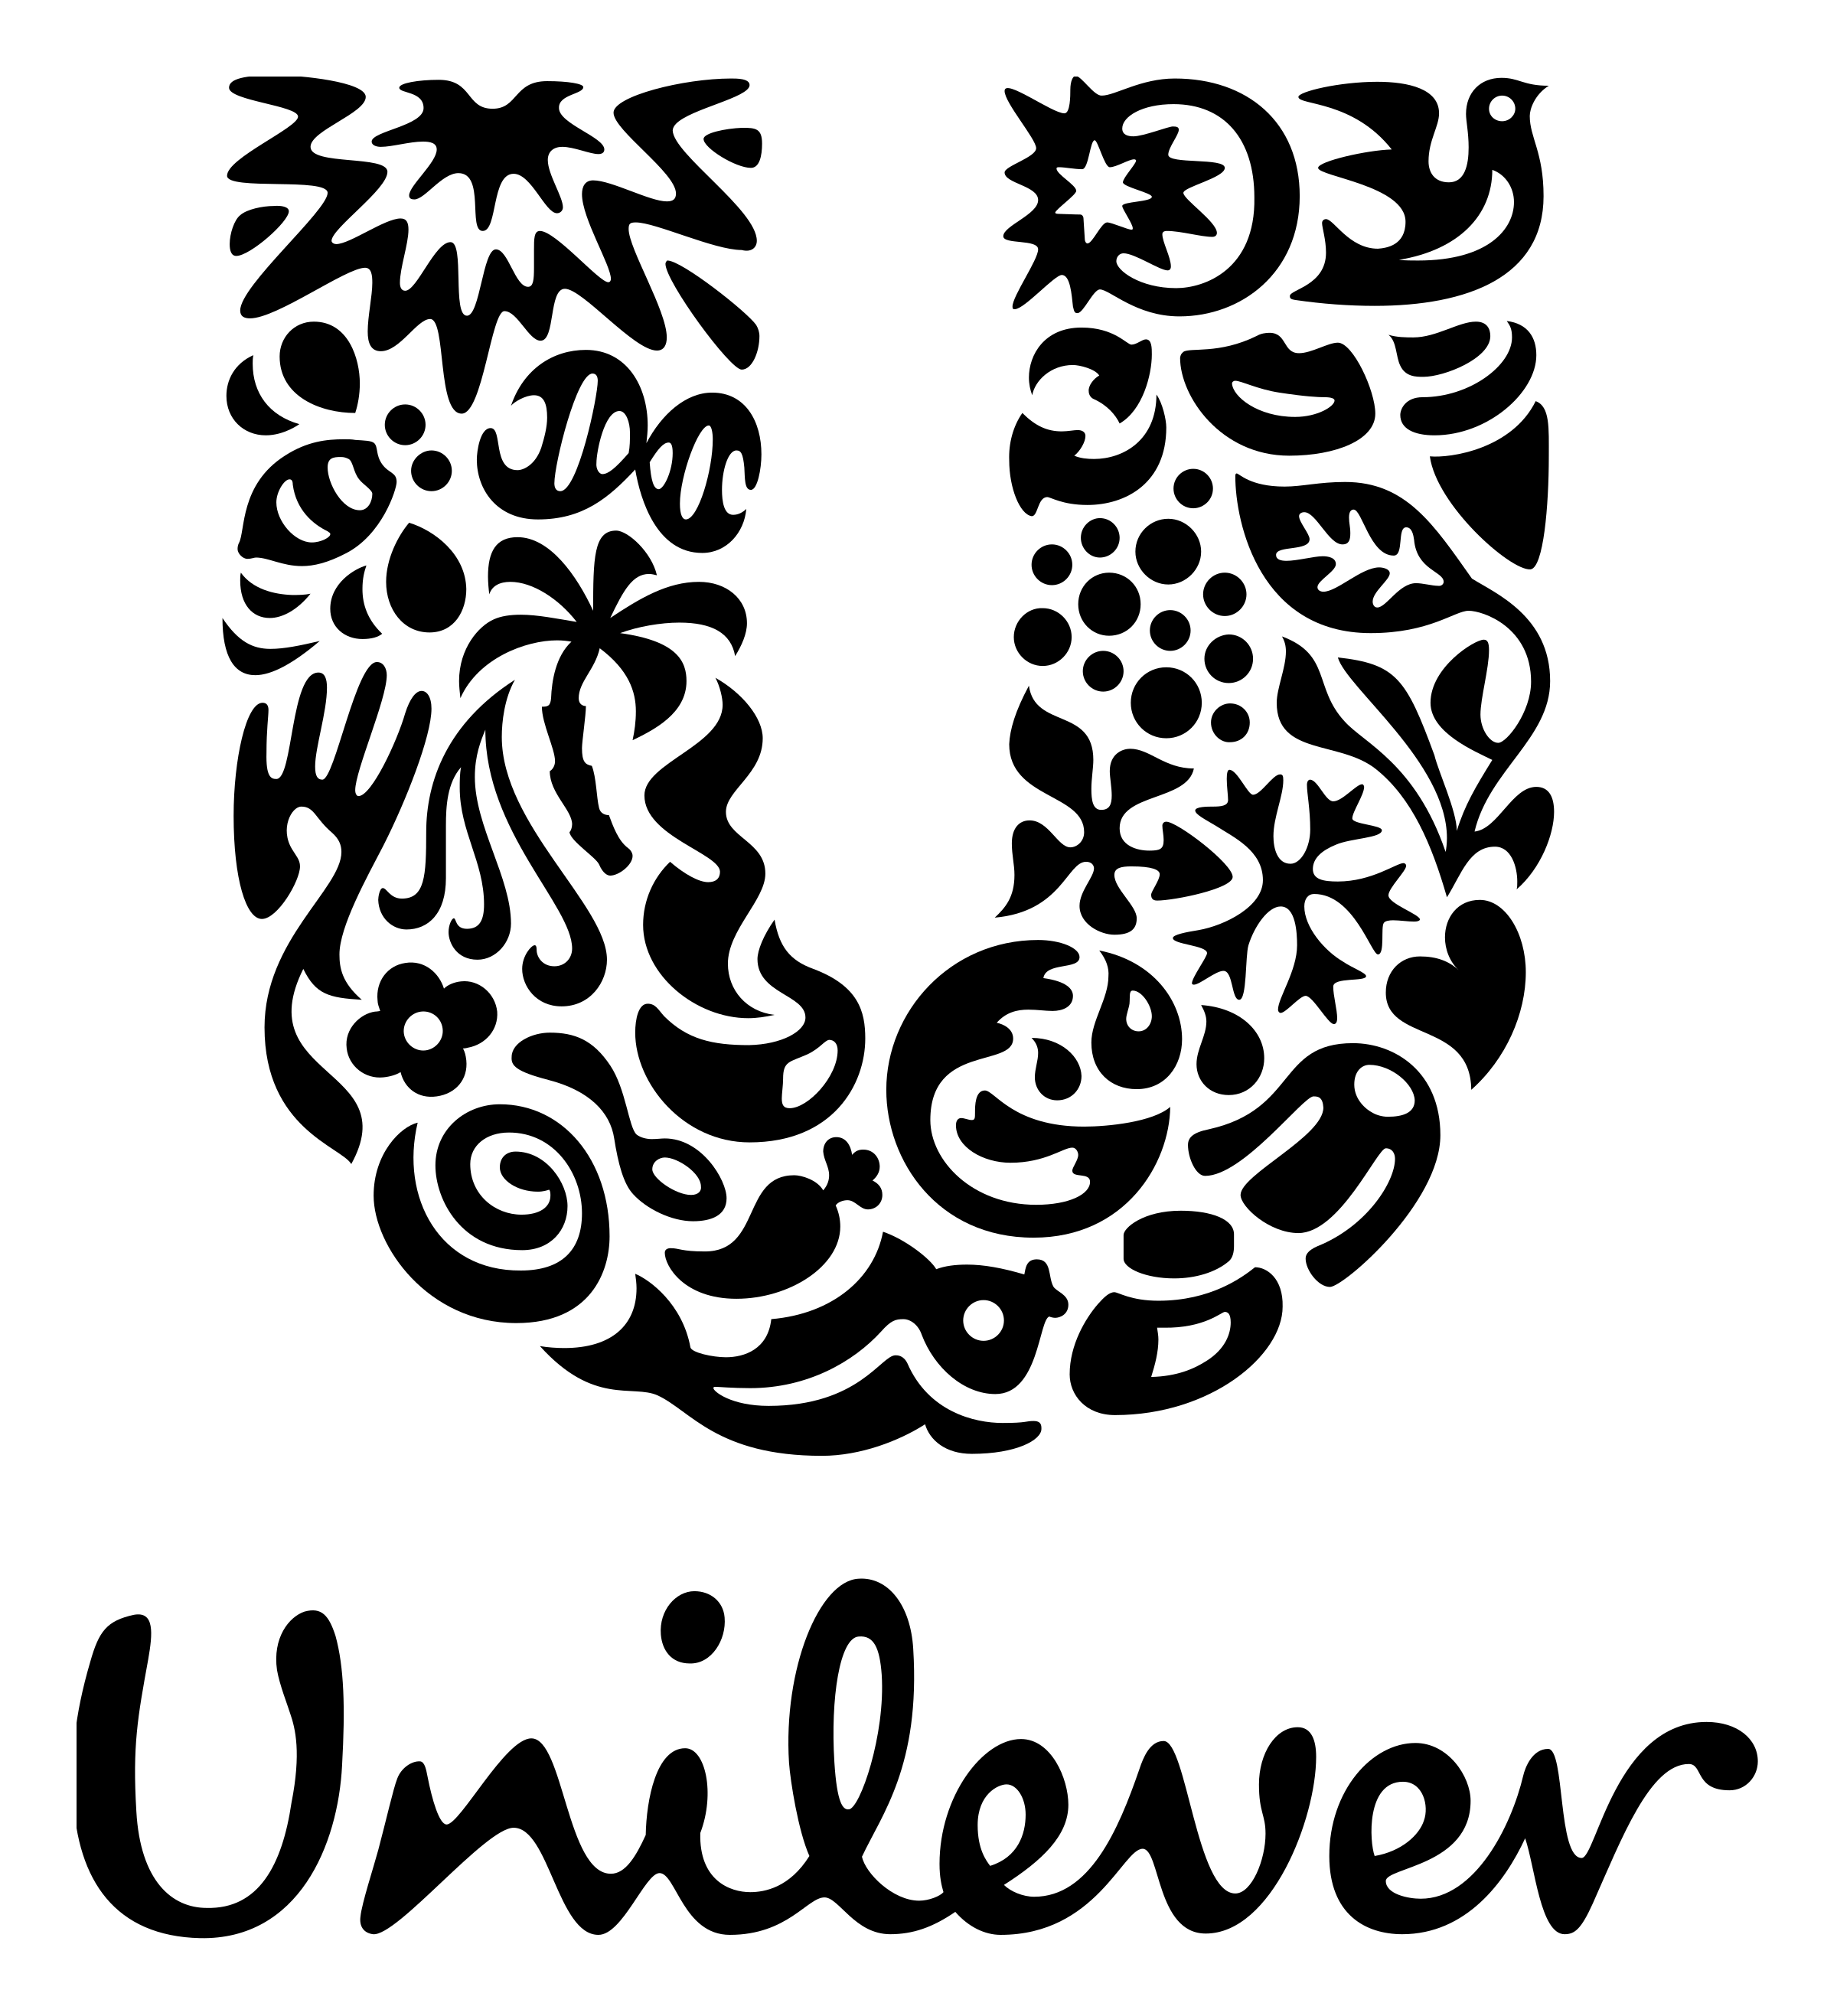 Unilever logo with a large decorative U at the top